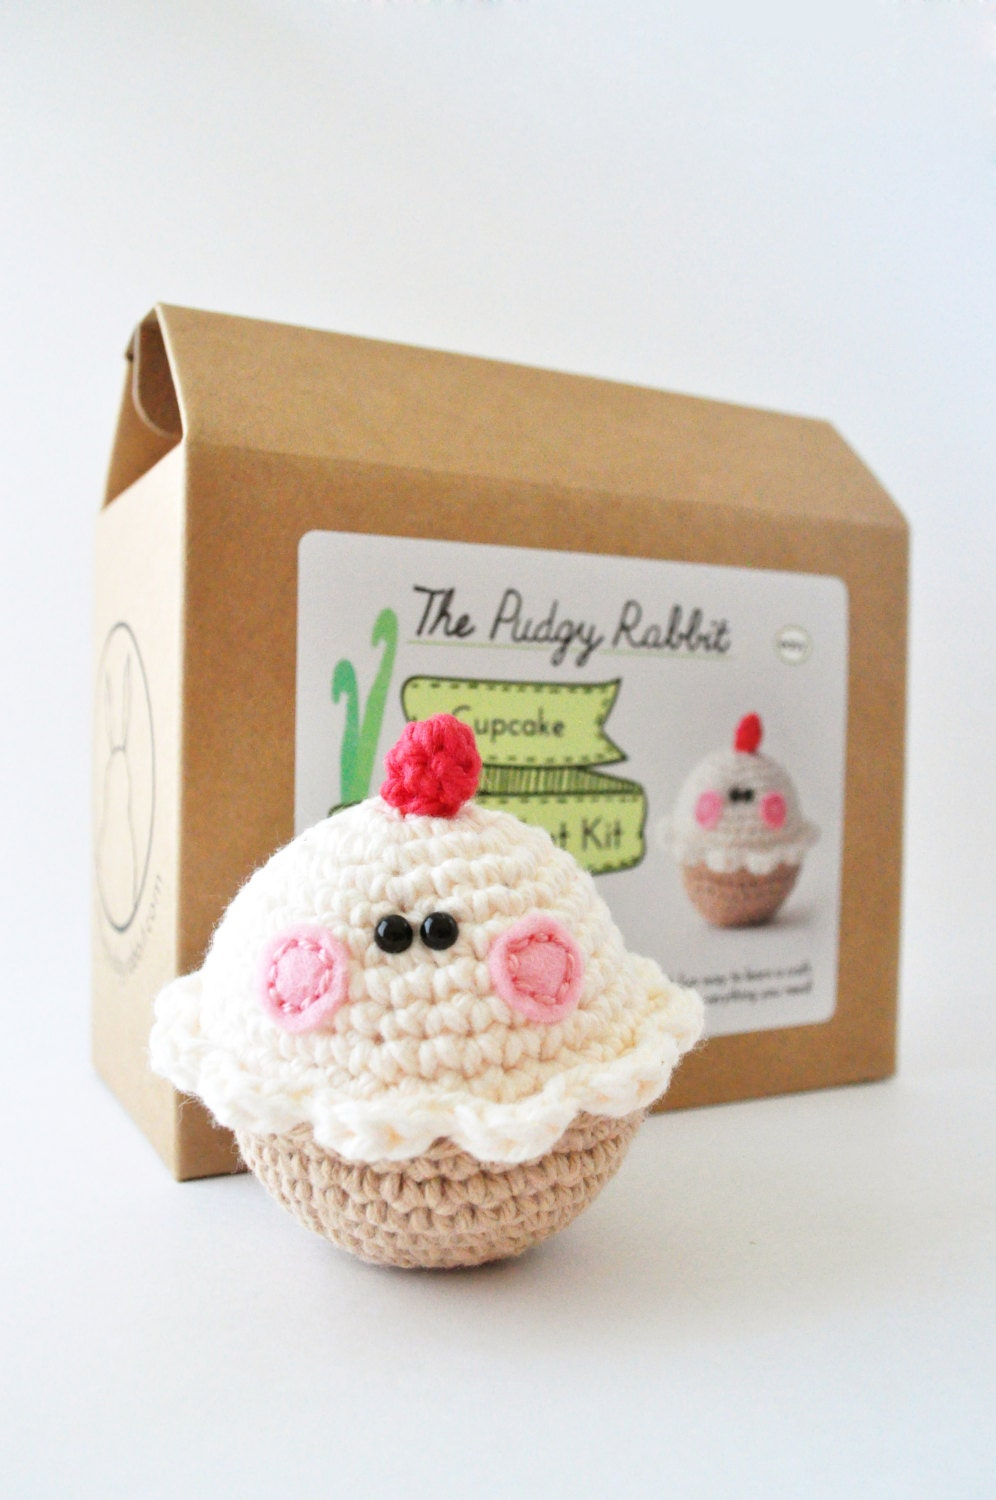 Crochet Cupcake Kit Amigurumi Kit DIY Craft Learn to